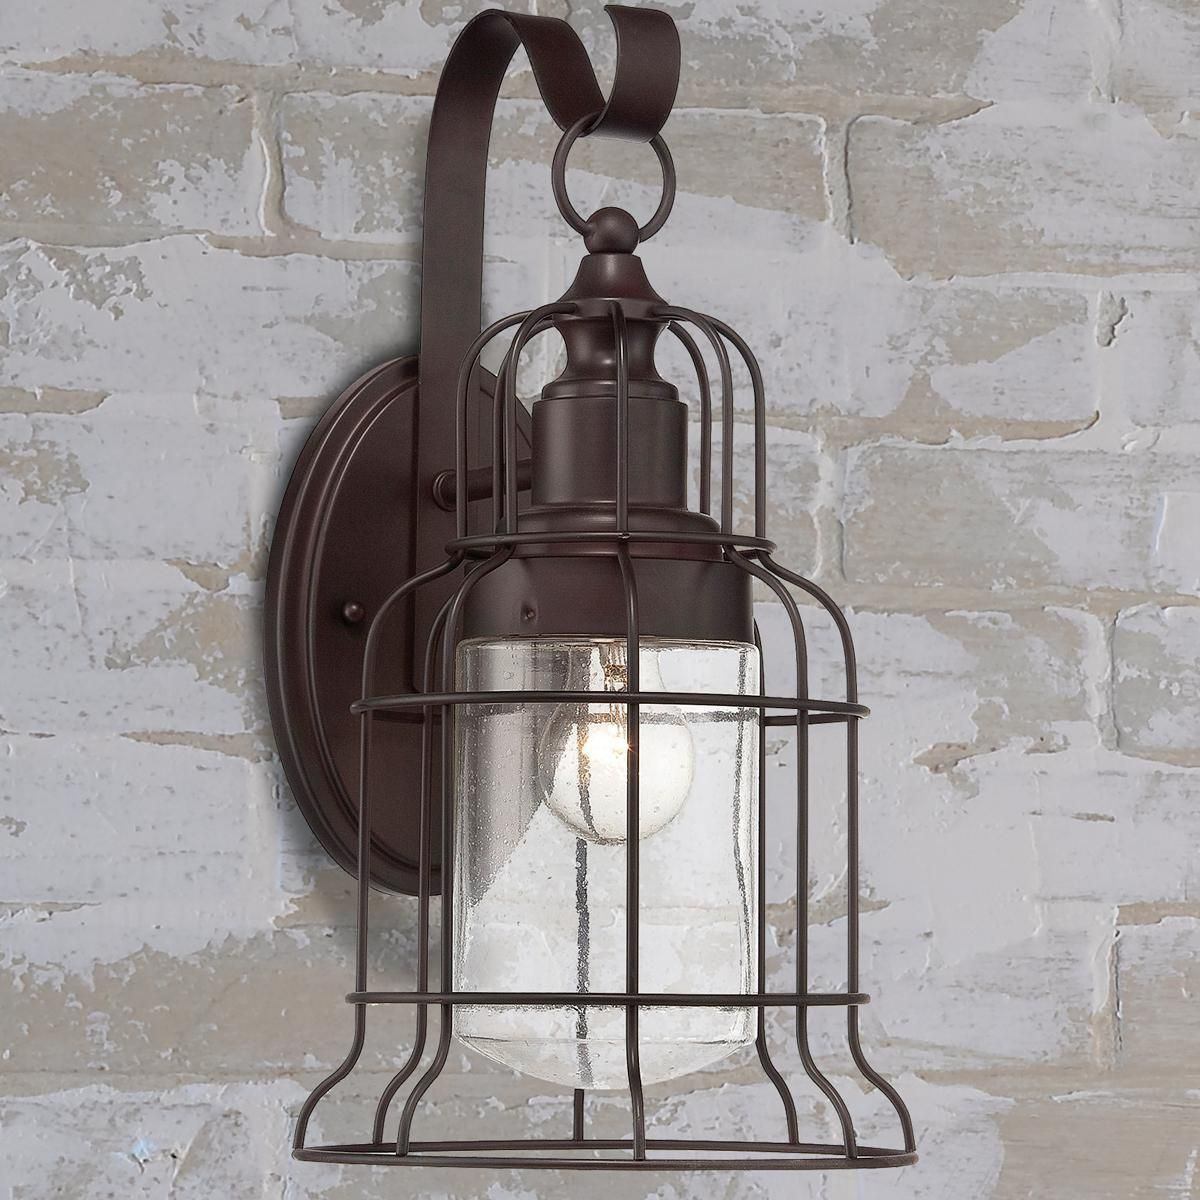 Farmhouse Wall Sconce Industrial Oceanside Wall Sconce - Large | Farmhouse Style